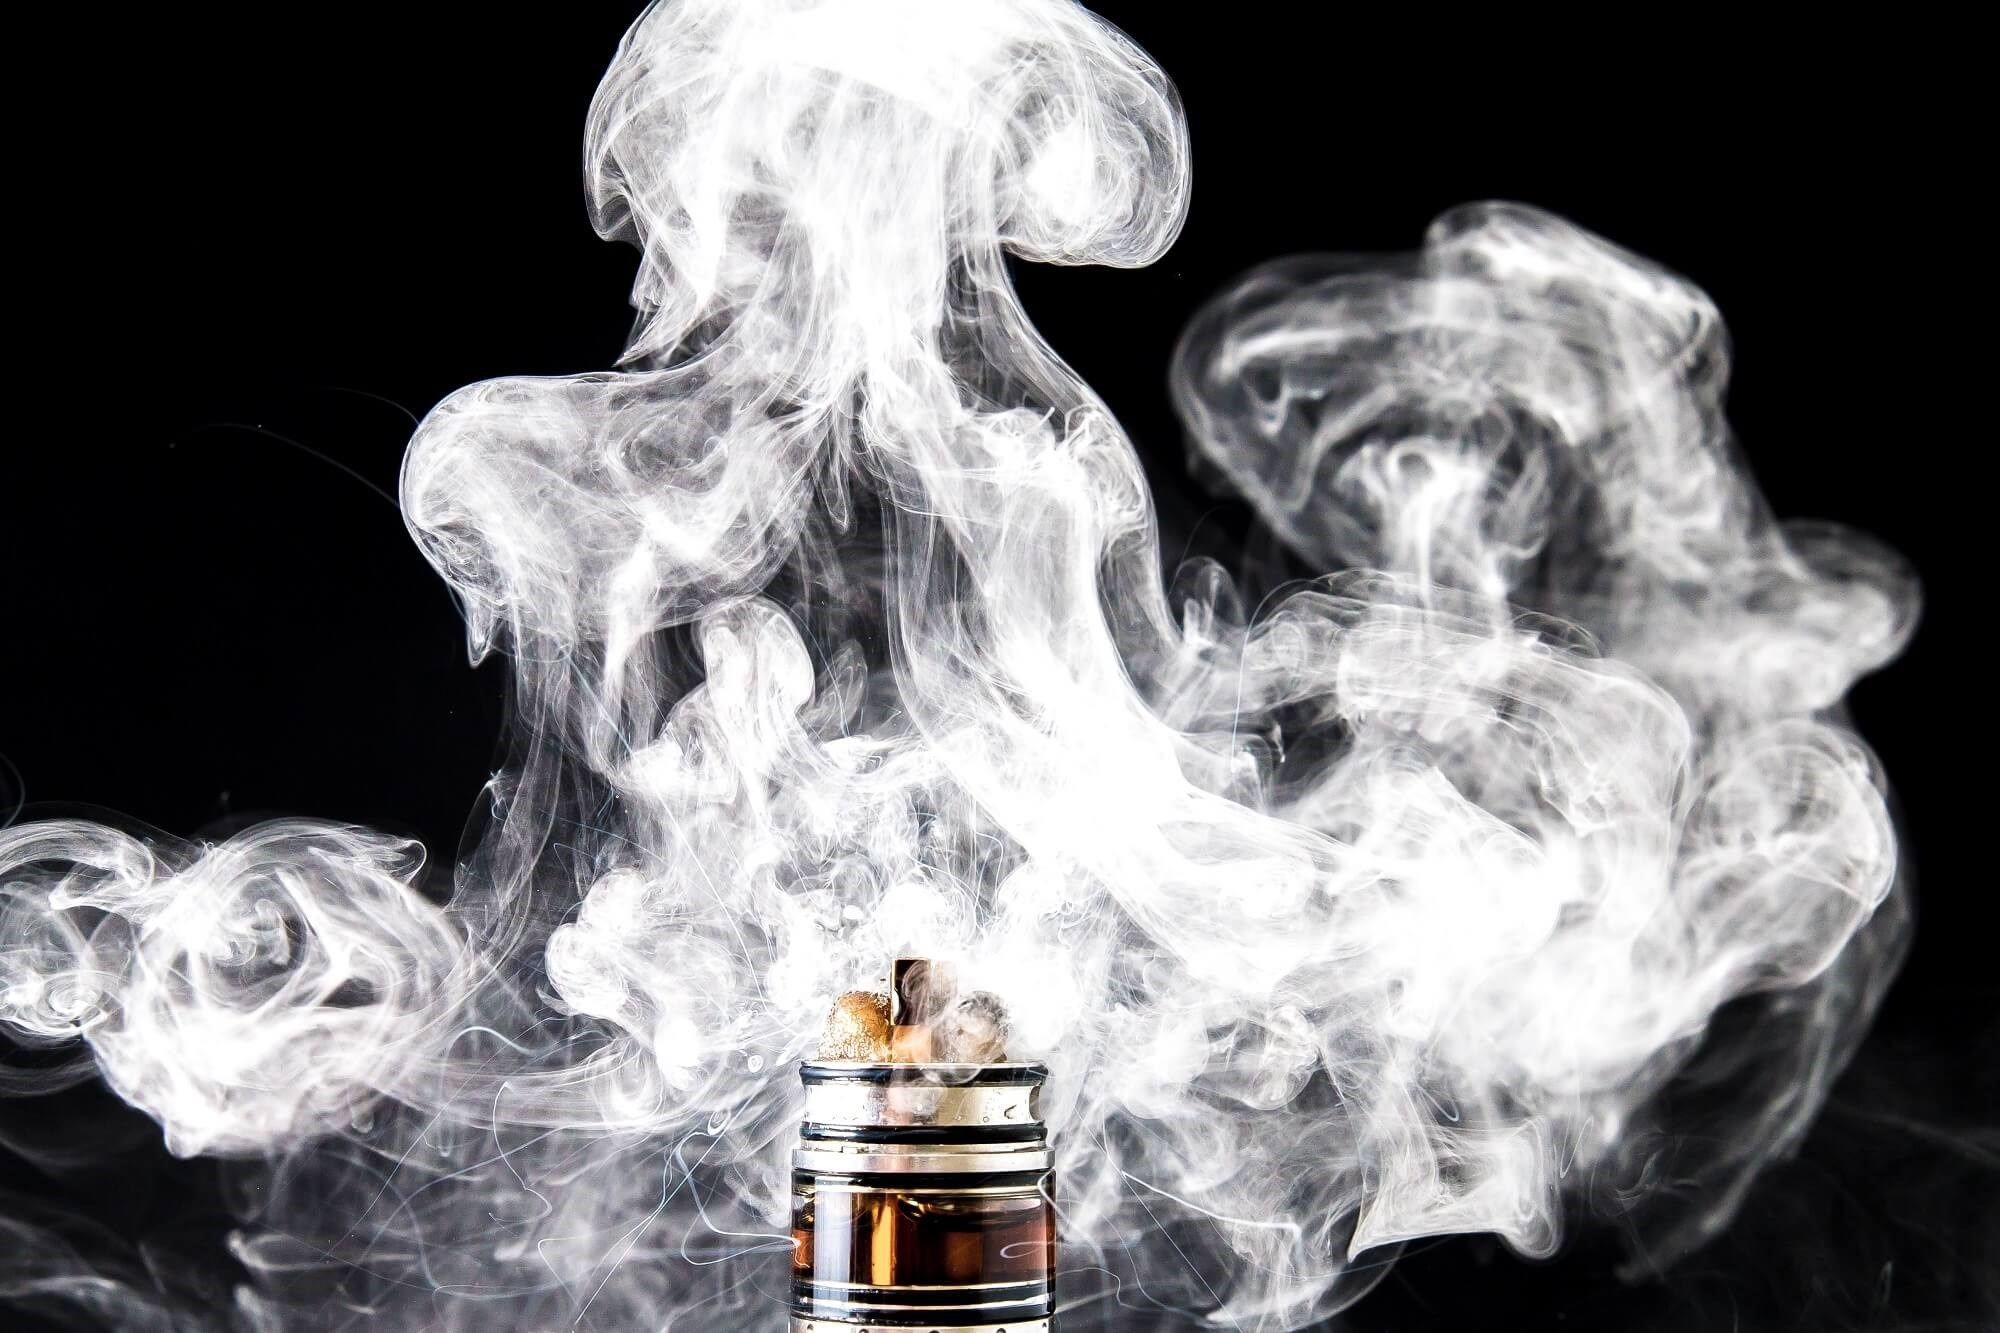 Adolescent, Young Adult Pod-Based E-Cigarette Use Up